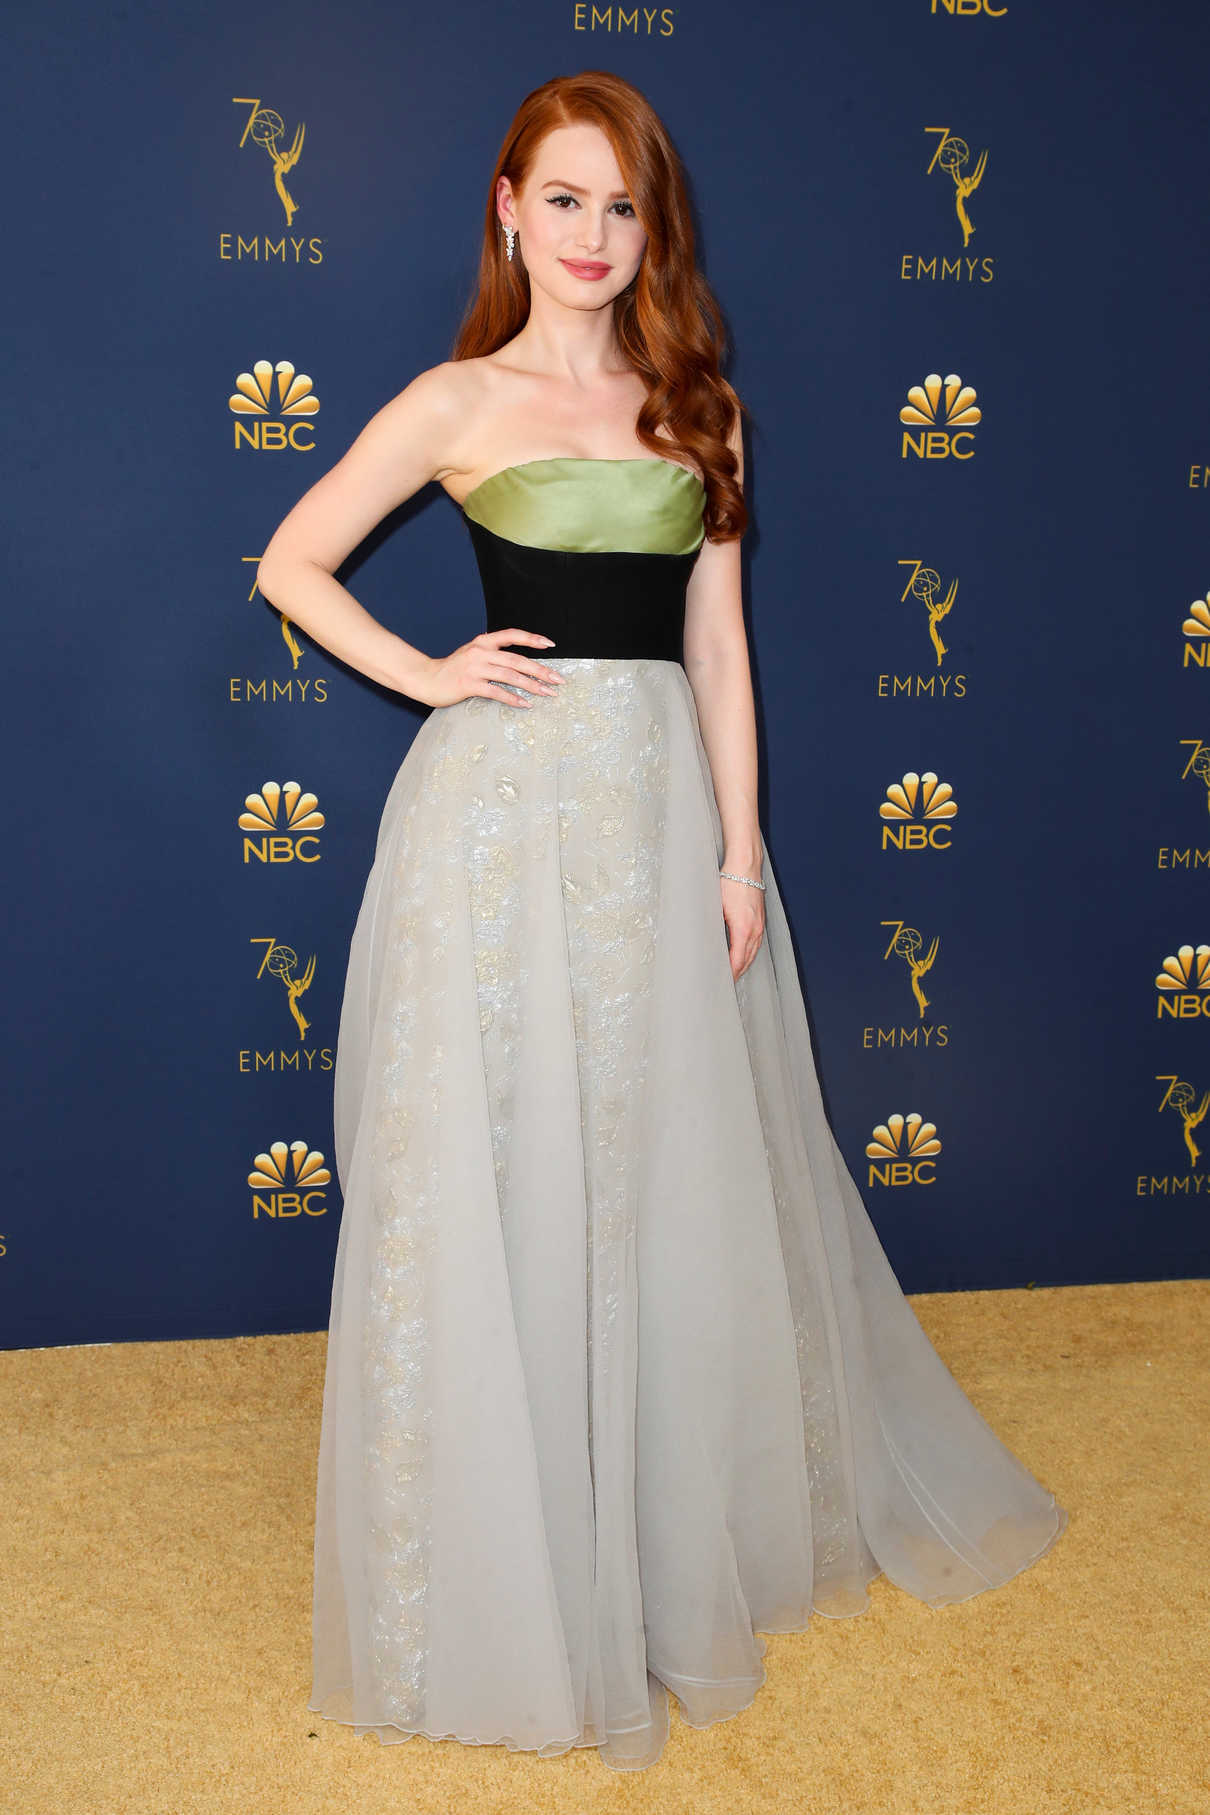 Madelaine Petsch at the 70th Primetime Emmy Awards in LA ...